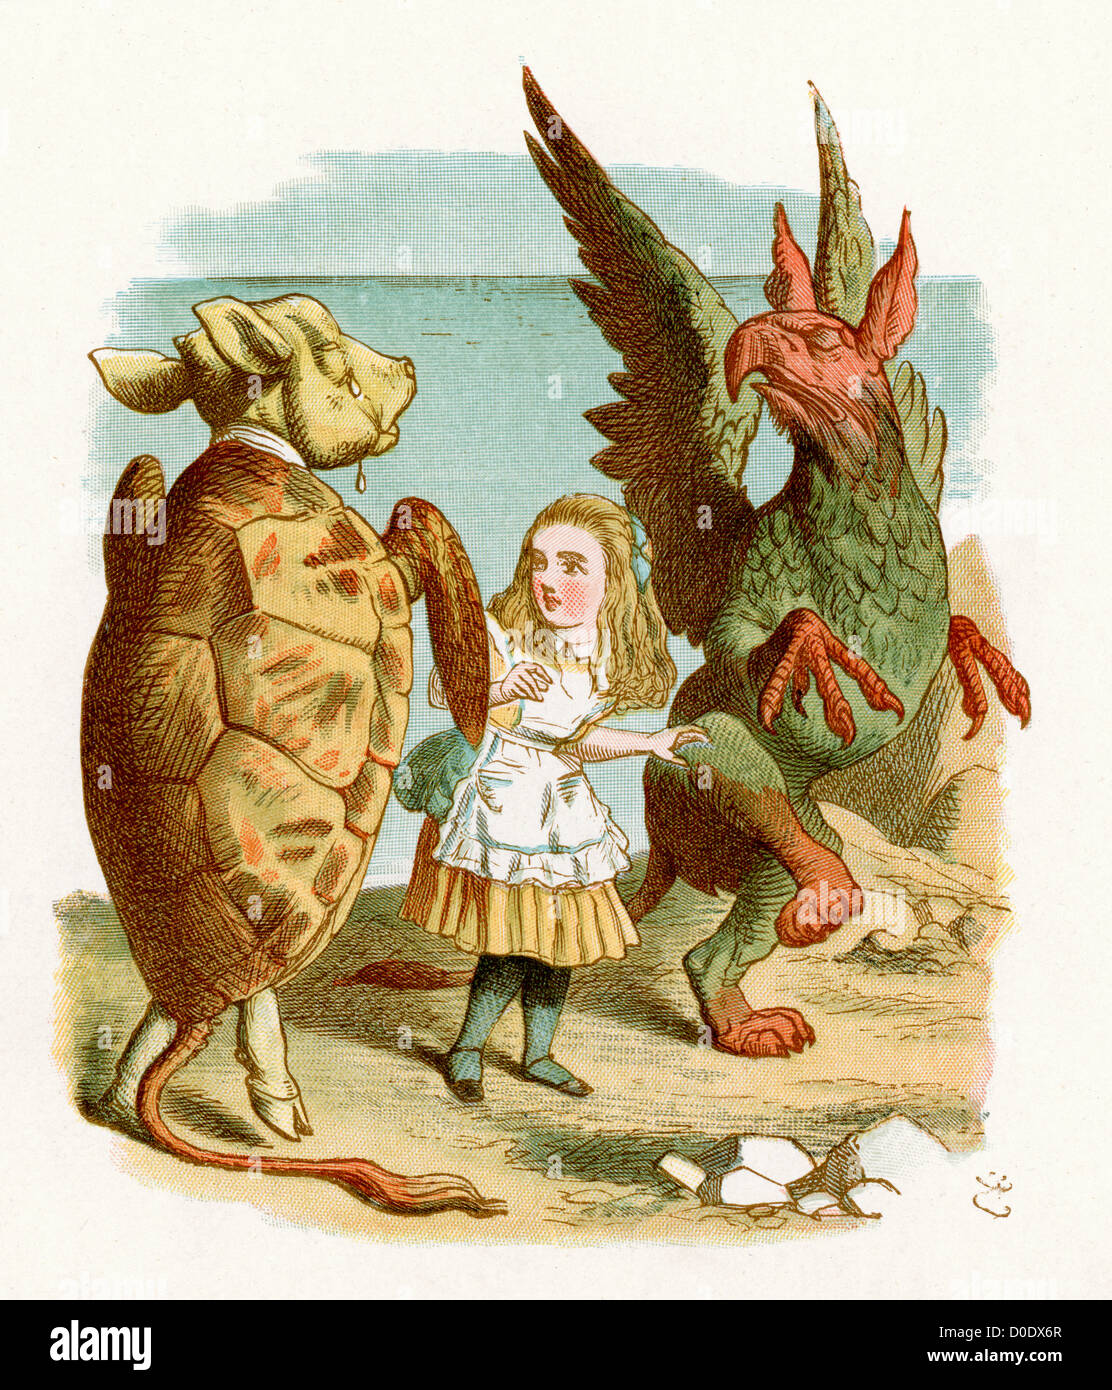 The Gryphon and Mock Turtle, from the Lewis Carroll Story Alice in Wonderland, Illustration by Sir John Tenniel - Stock Image